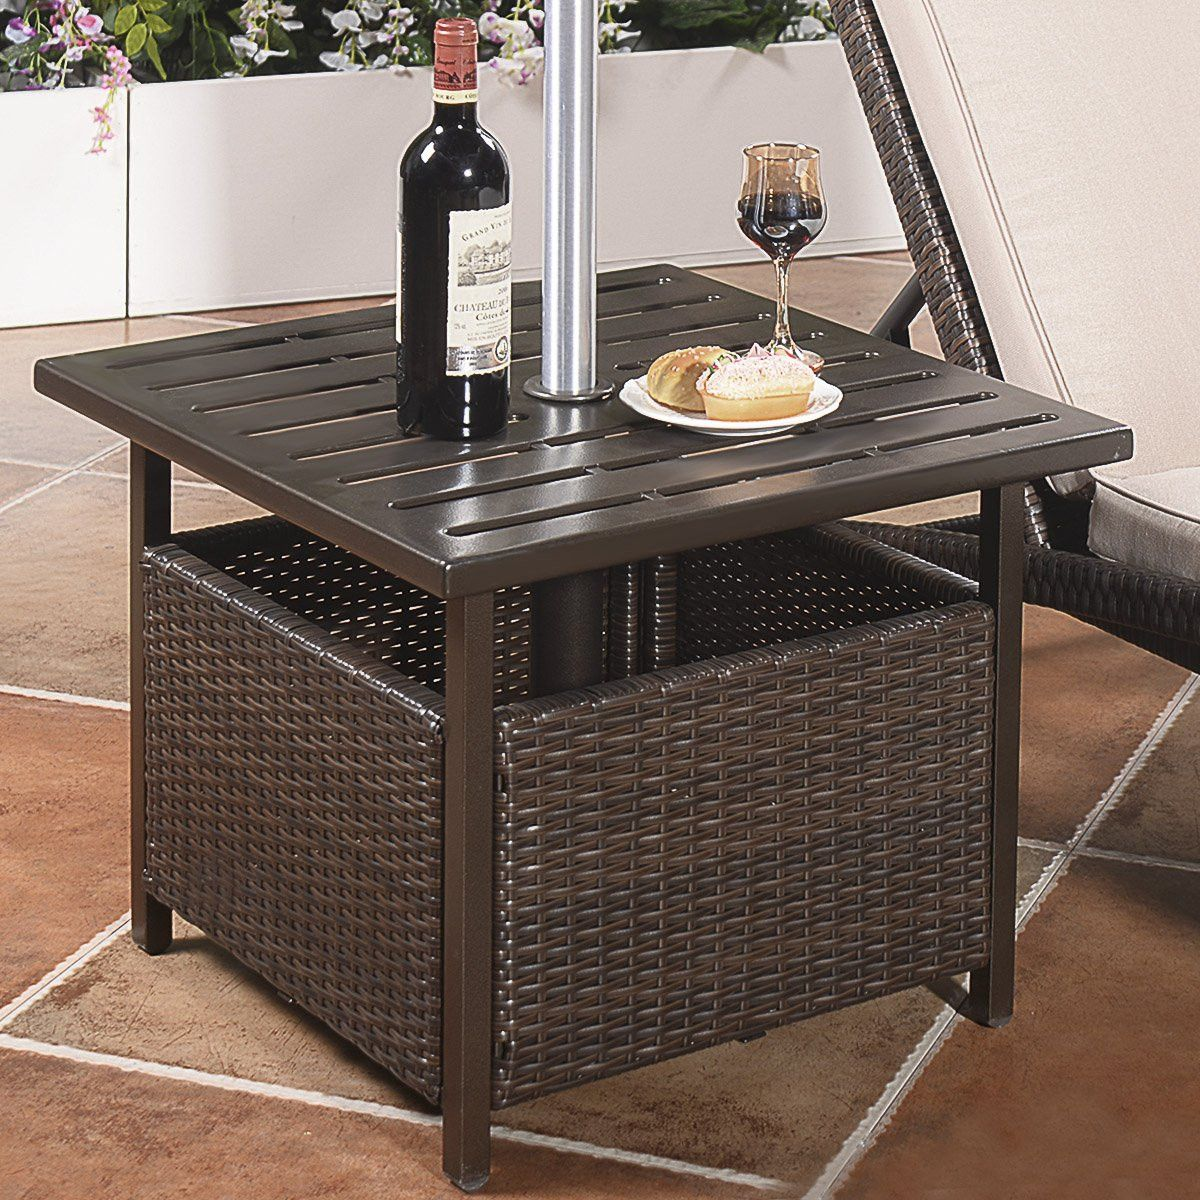 Giantex Patio Rattan Wicker Umbrella Side Table Stand With Umbrella Hole Deck Table Patio Umbrella Stand Metal Side Table